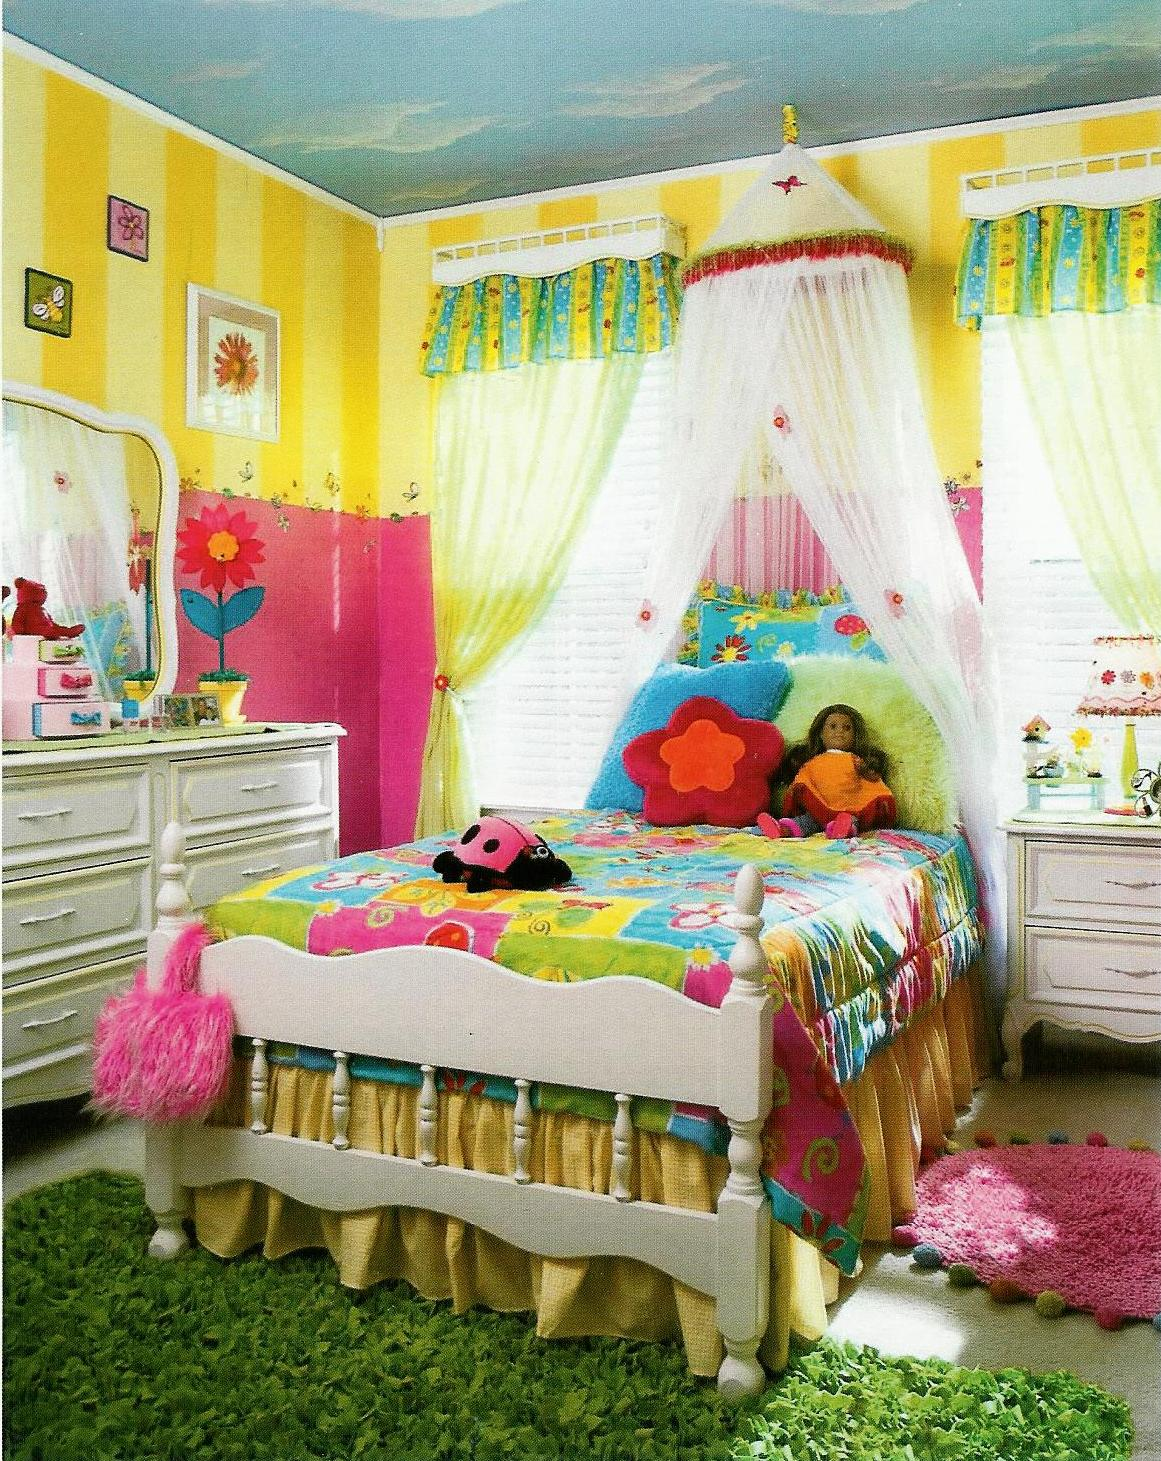 Room Design For Kid: Kids Rooms Decorations 2017